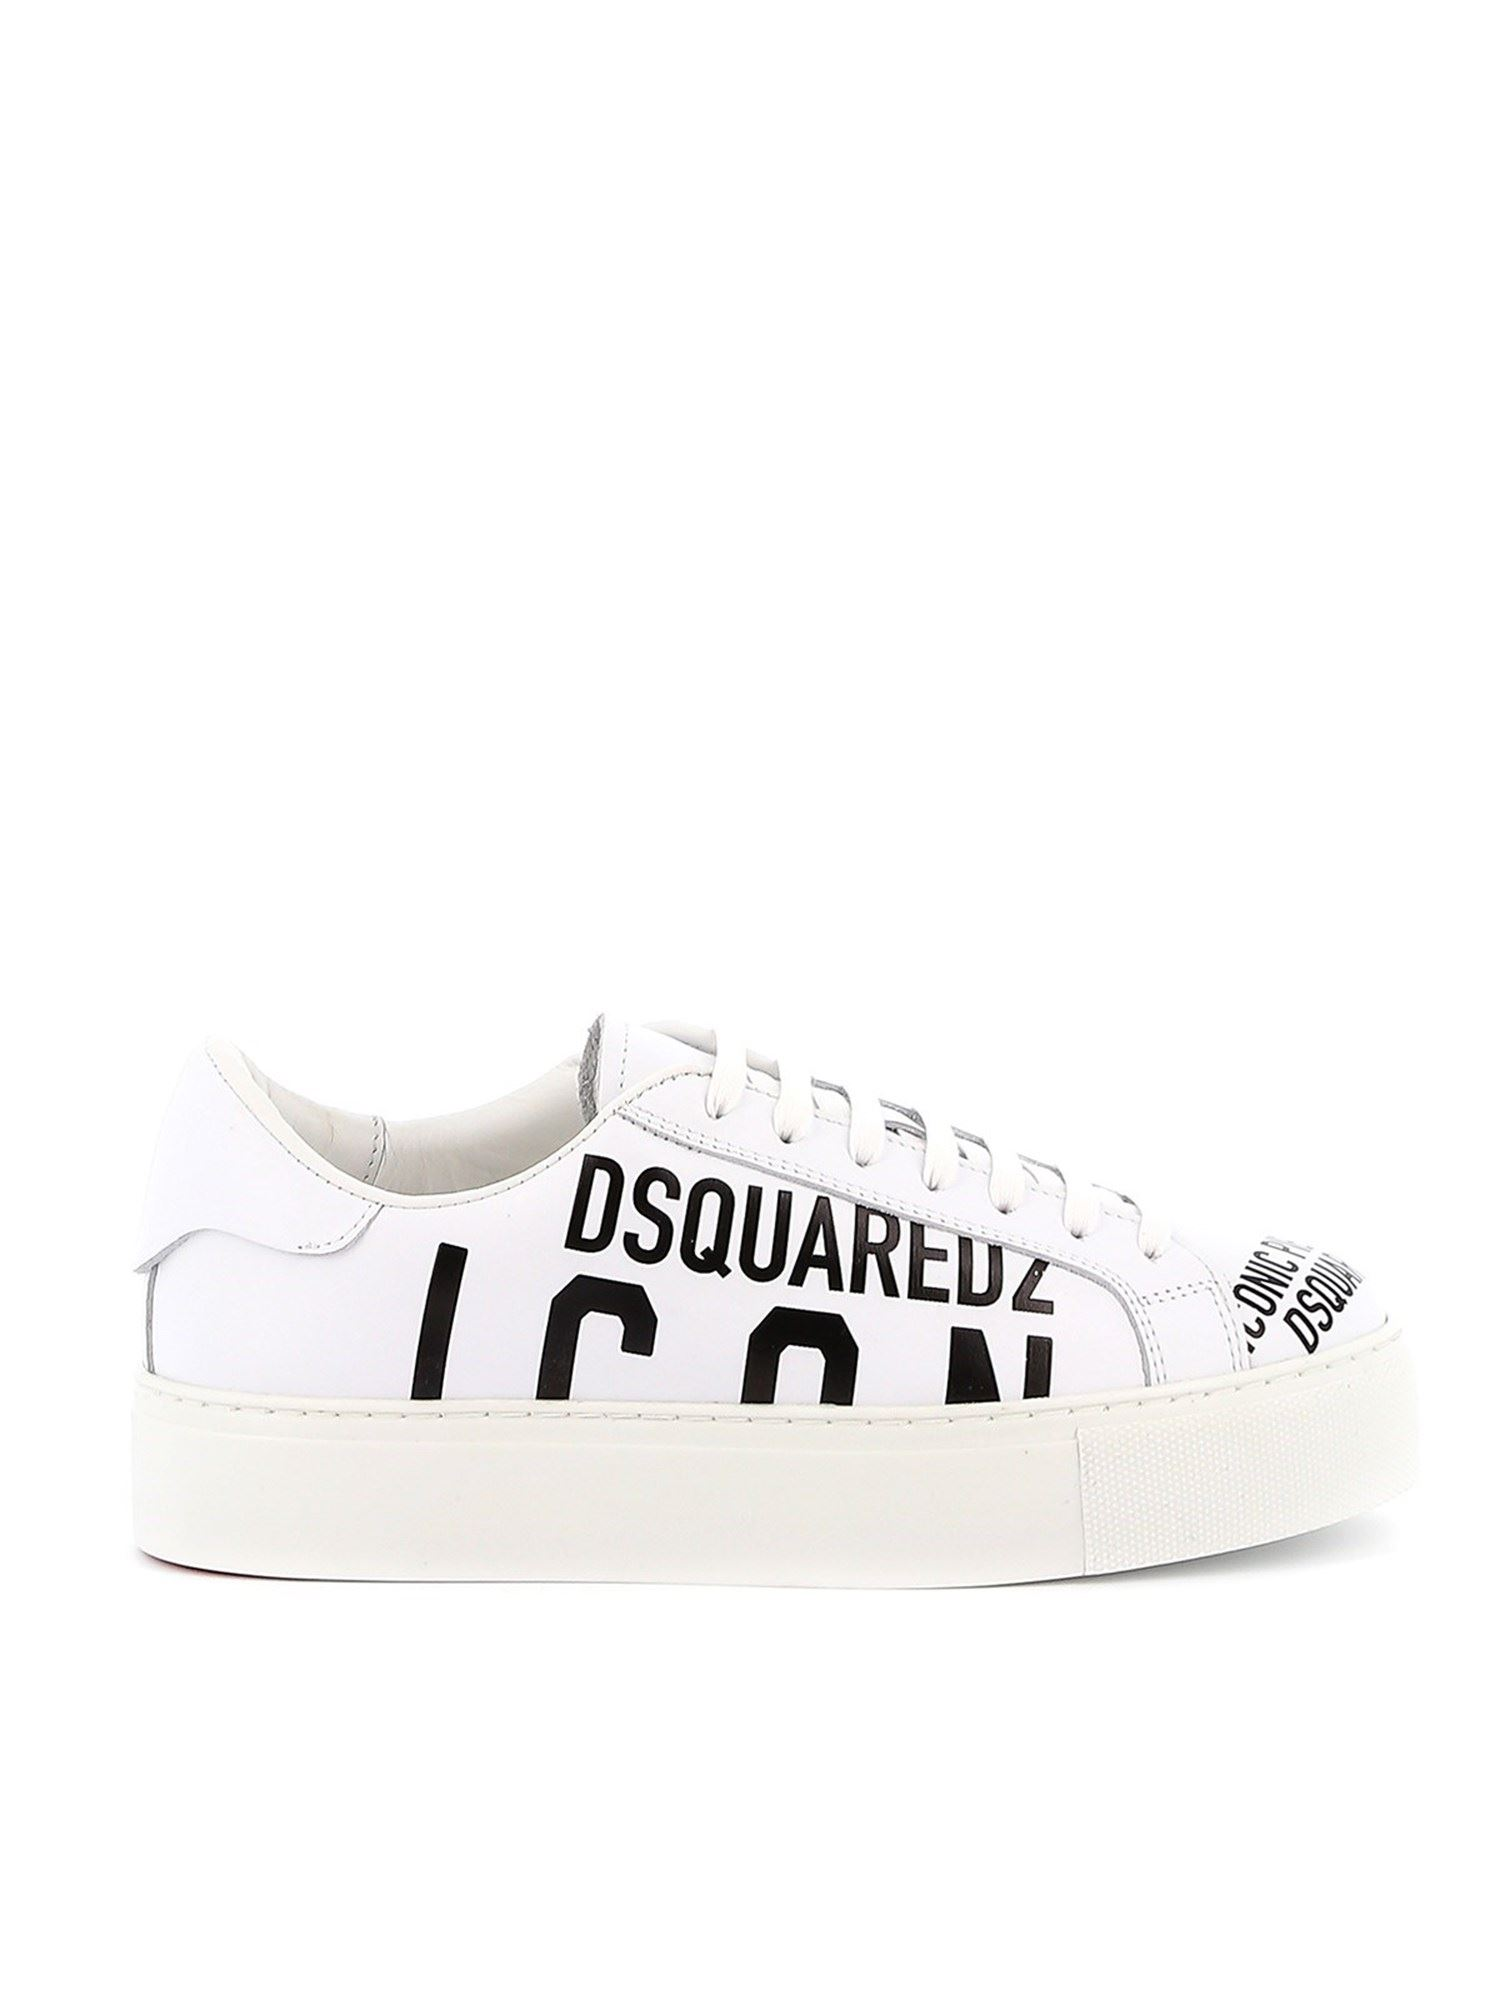 Dsquared2 Low-top Sneakers Tennis Club